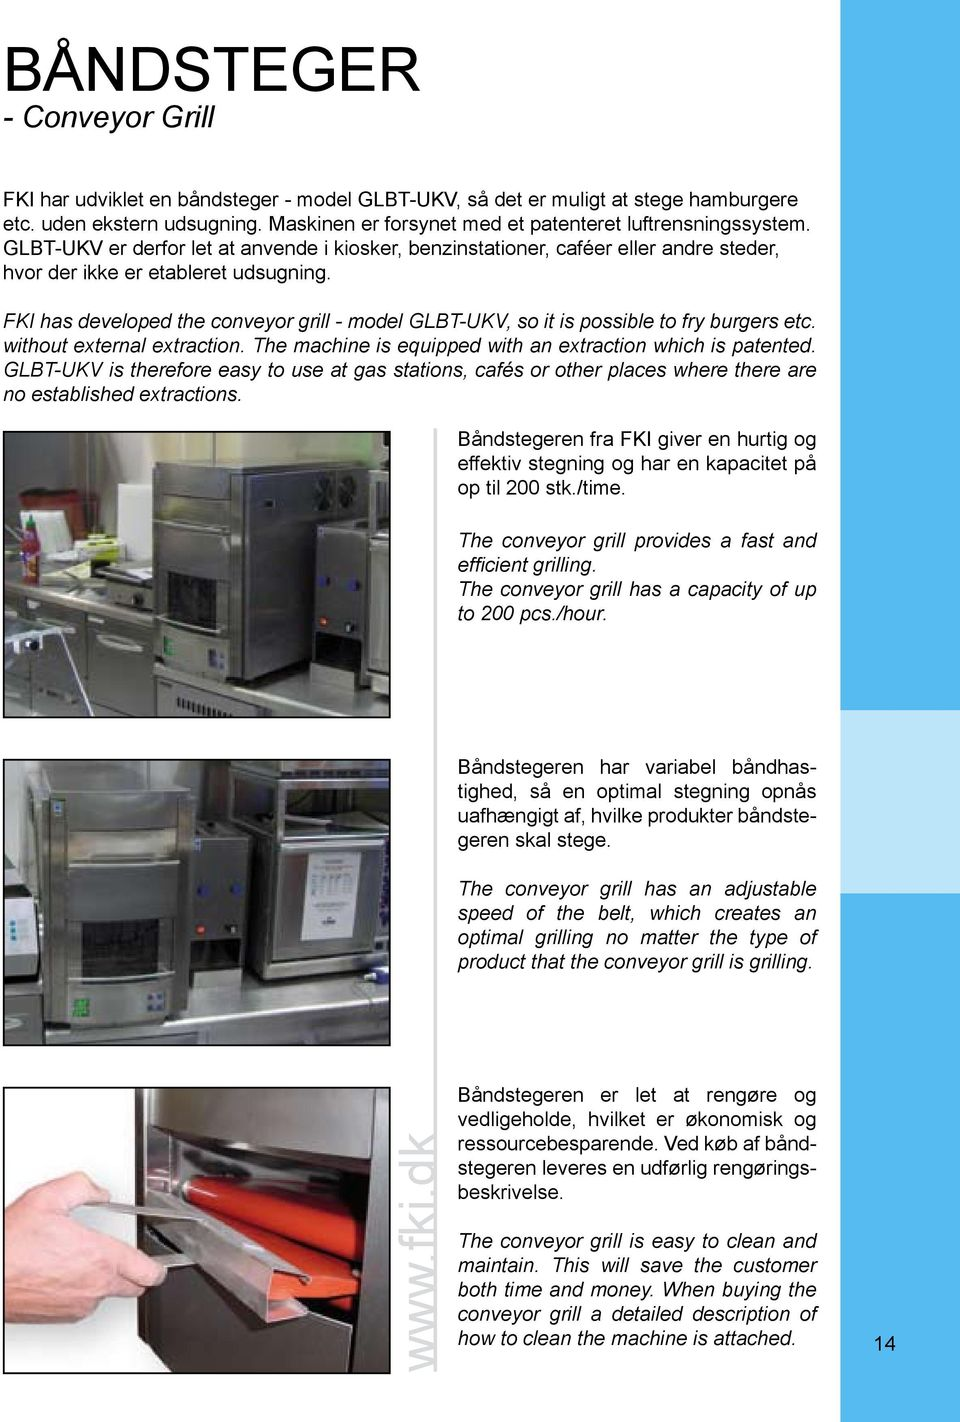 FKI has developed the conveyor grill - model GLBT-UKV, so it is possible to fry burgers etc. without external extraction. The machine is equipped with an extraction which is patented.